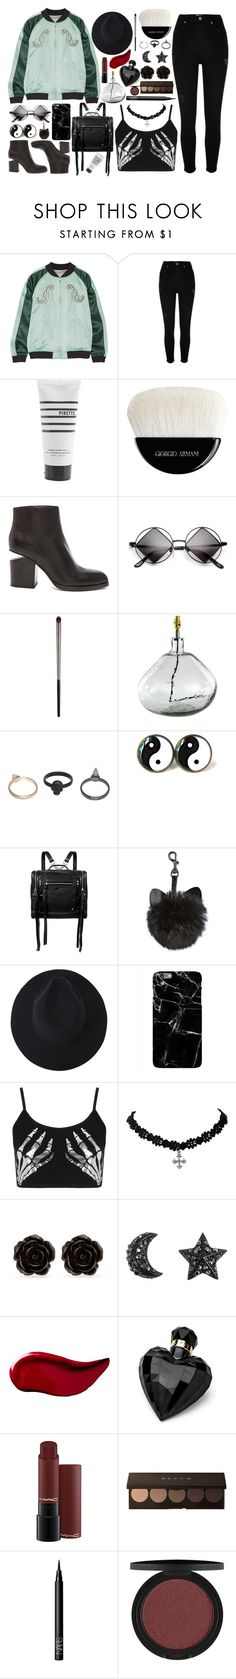 """someone to fall back on"" by skittlebum ❤ liked on Polyvore featuring Opening Ceremony, River Island, Pirette, Giorgio Armani, Alexander Wang, Urban Decay, NKUKU, Gathering Eye, McQ by Alexander McQueen and Boohoo"